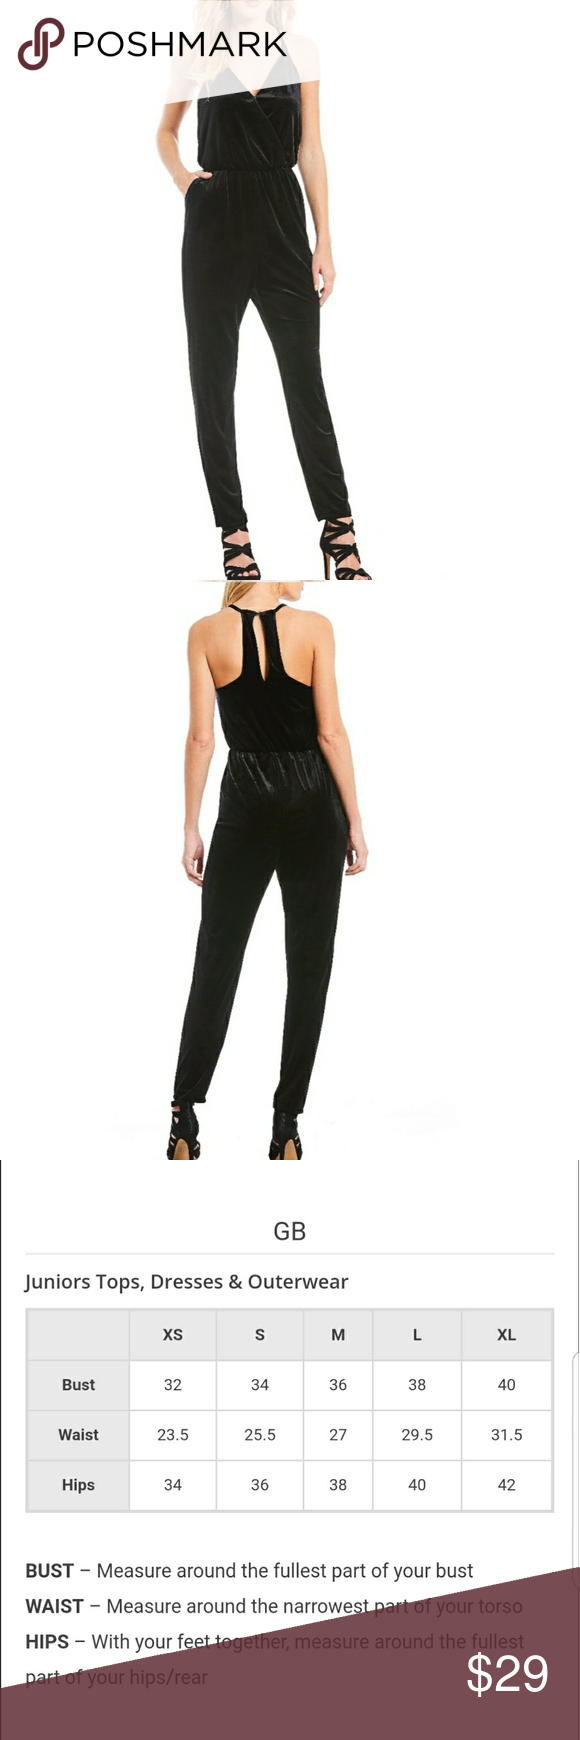 712d68d0316 Gianni Bini · Model · NWT GB Velvet V-Neck Jumpsuit BLACK From GB